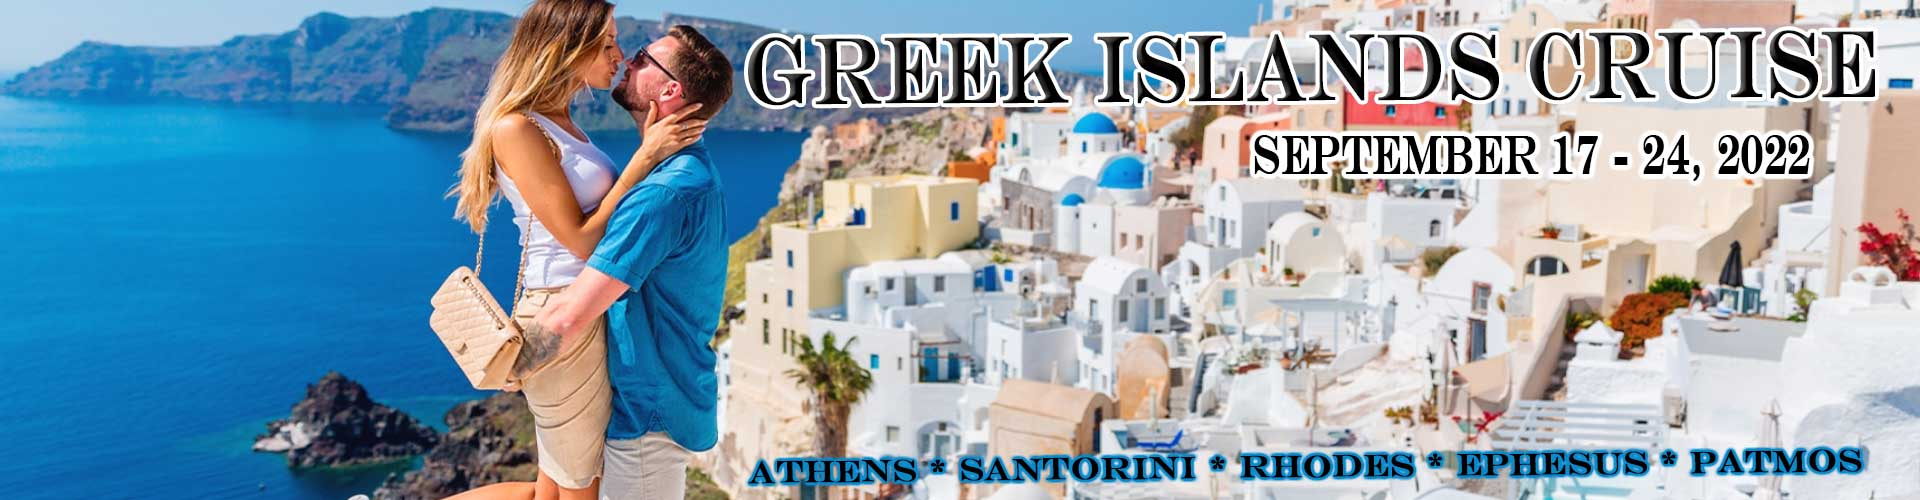 Desire Greek Islands Cruise